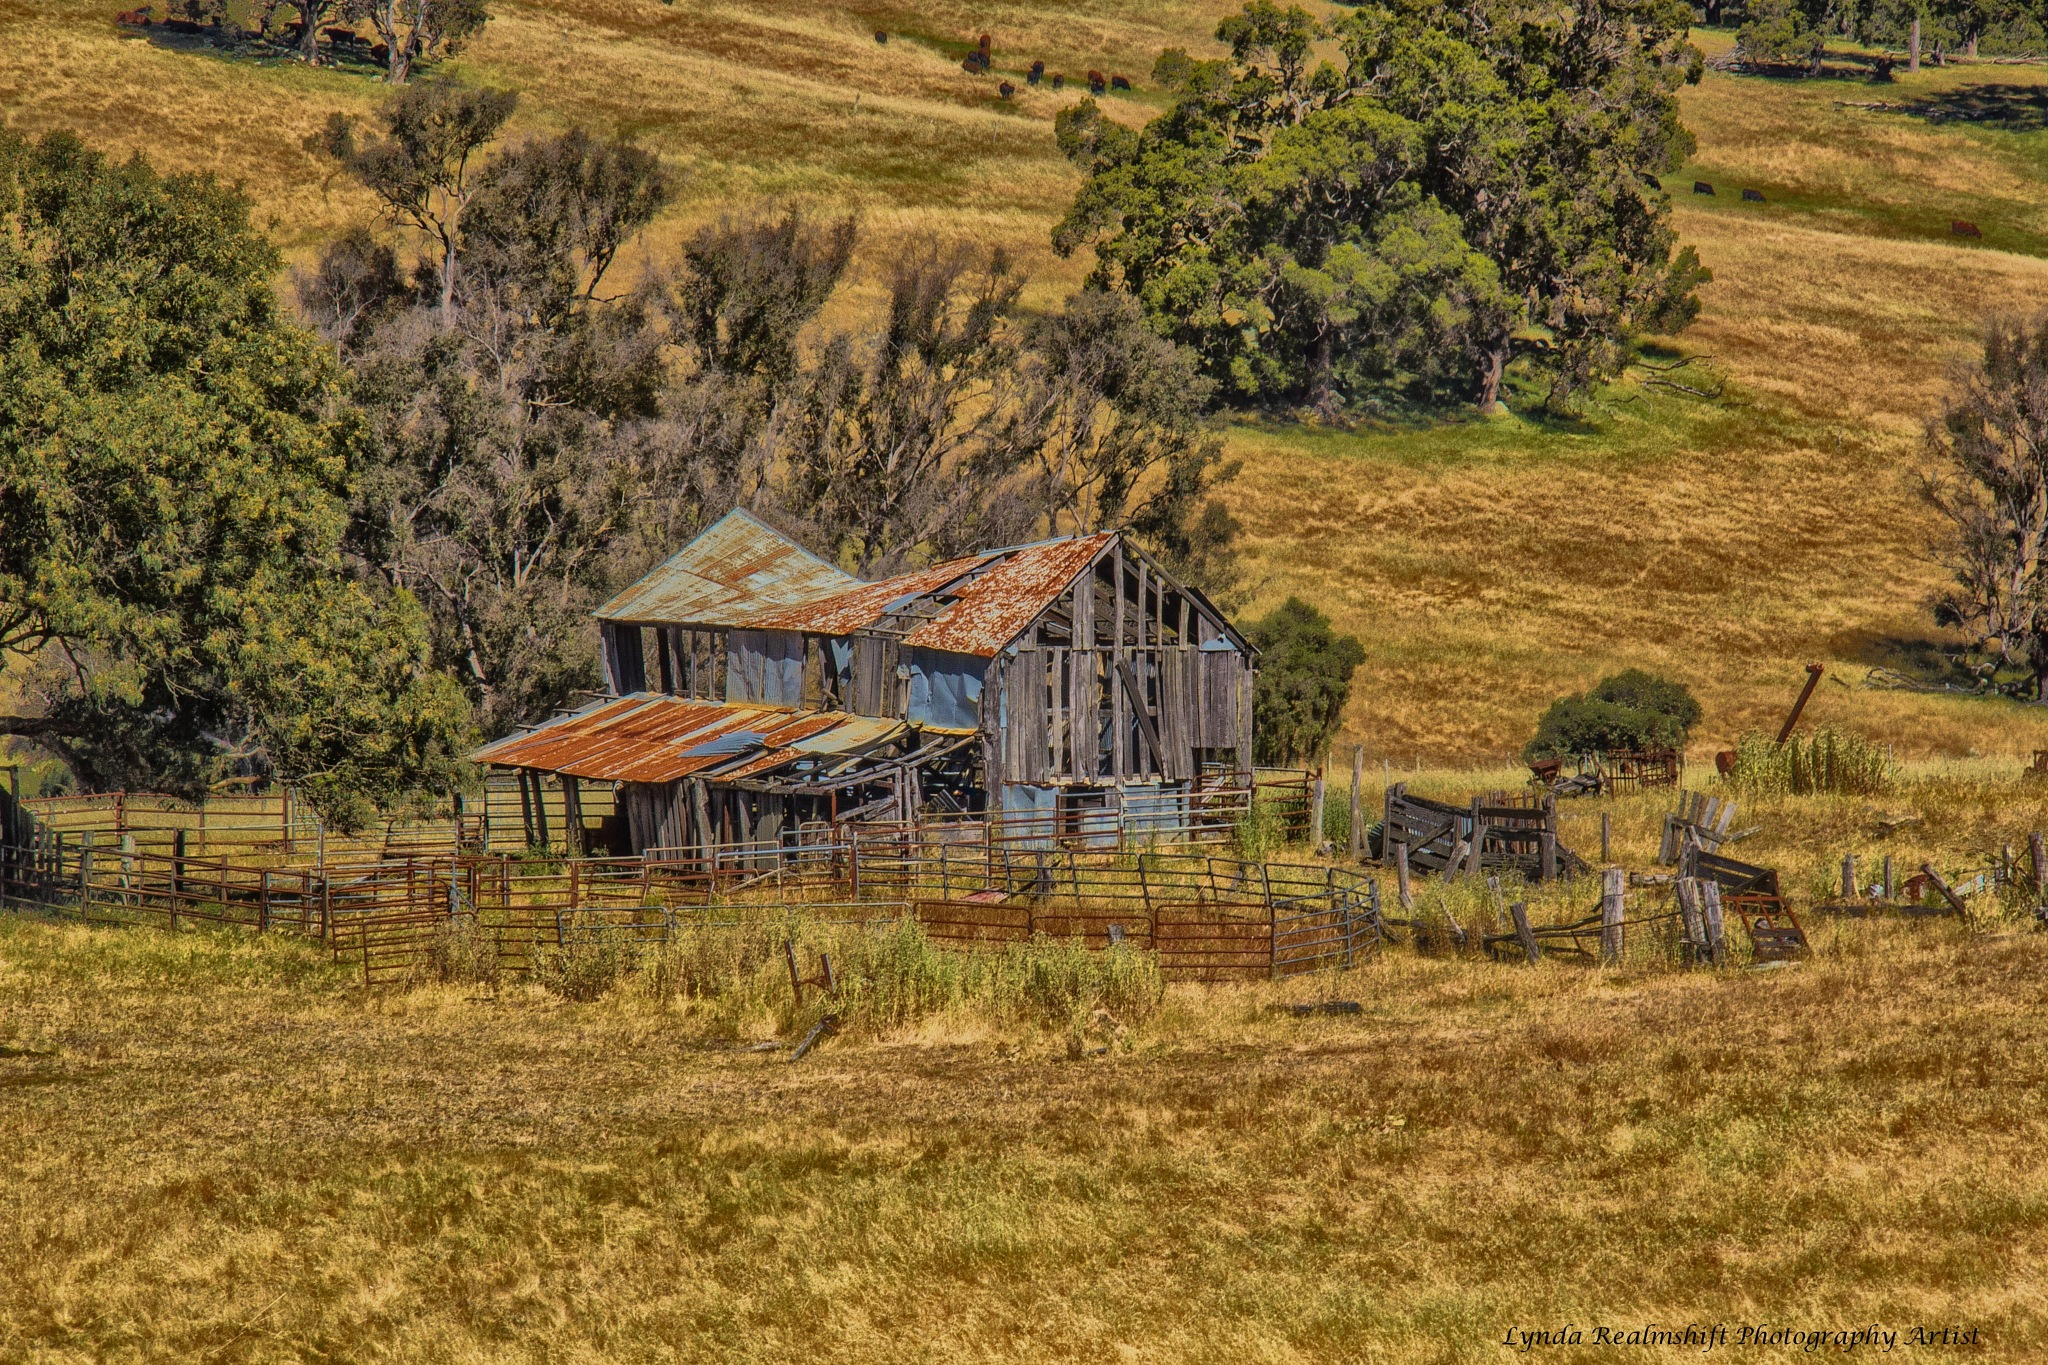 Old Shearing Shed & holding Pens by LyndaRealmshift